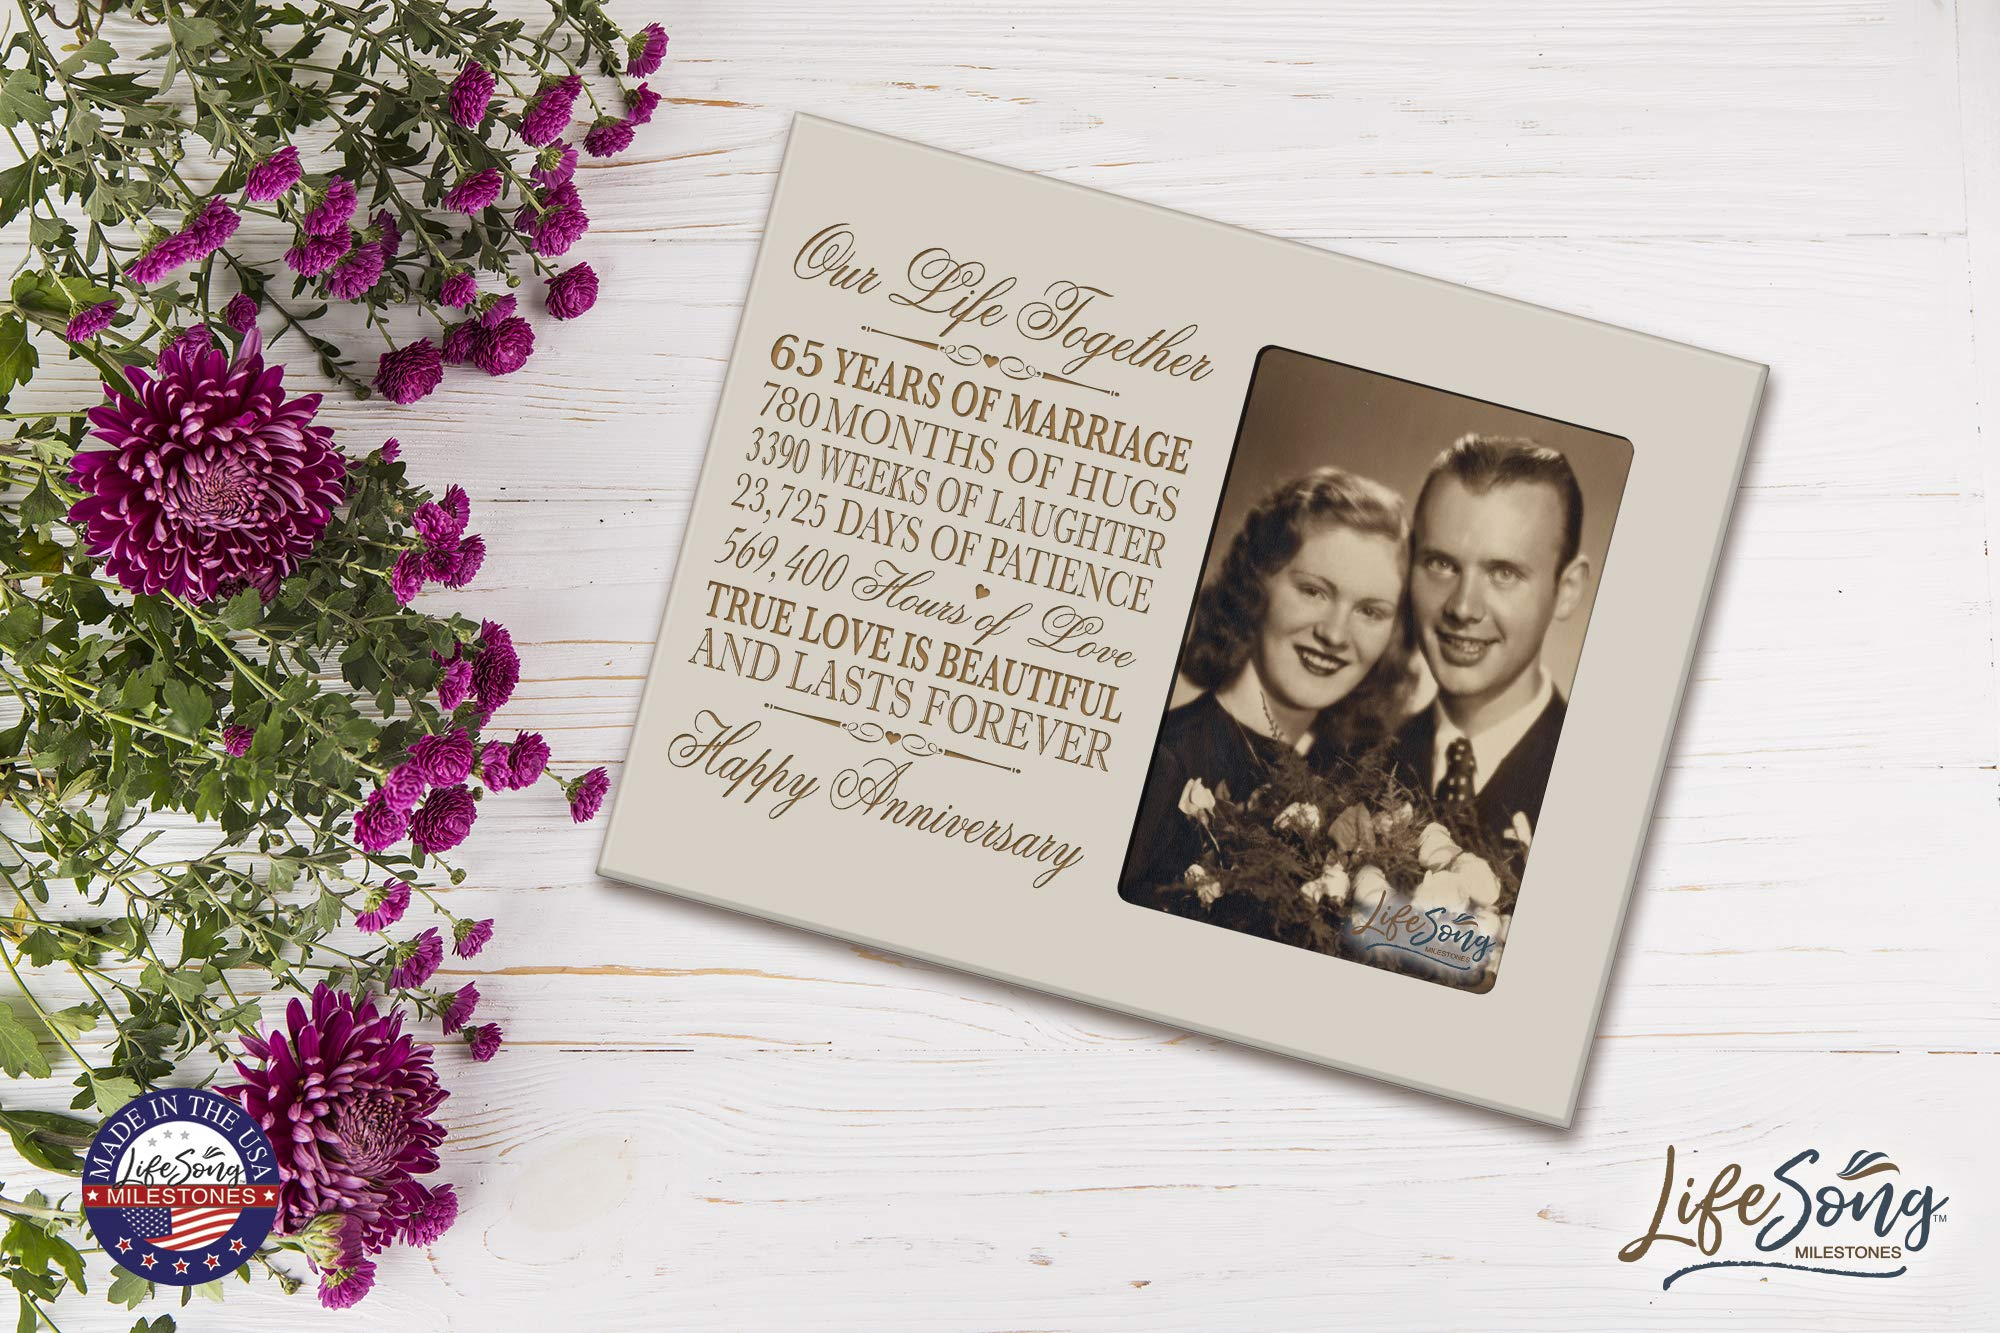 LifeSong Milestones 65th Year Wedding for her him Couple 65 Year Wedding for Parents Celebration Gift Picture Frame Holds 4x6 Photo 8'' H X 10'' W (Ivory) by LifeSong Milestones (Image #4)